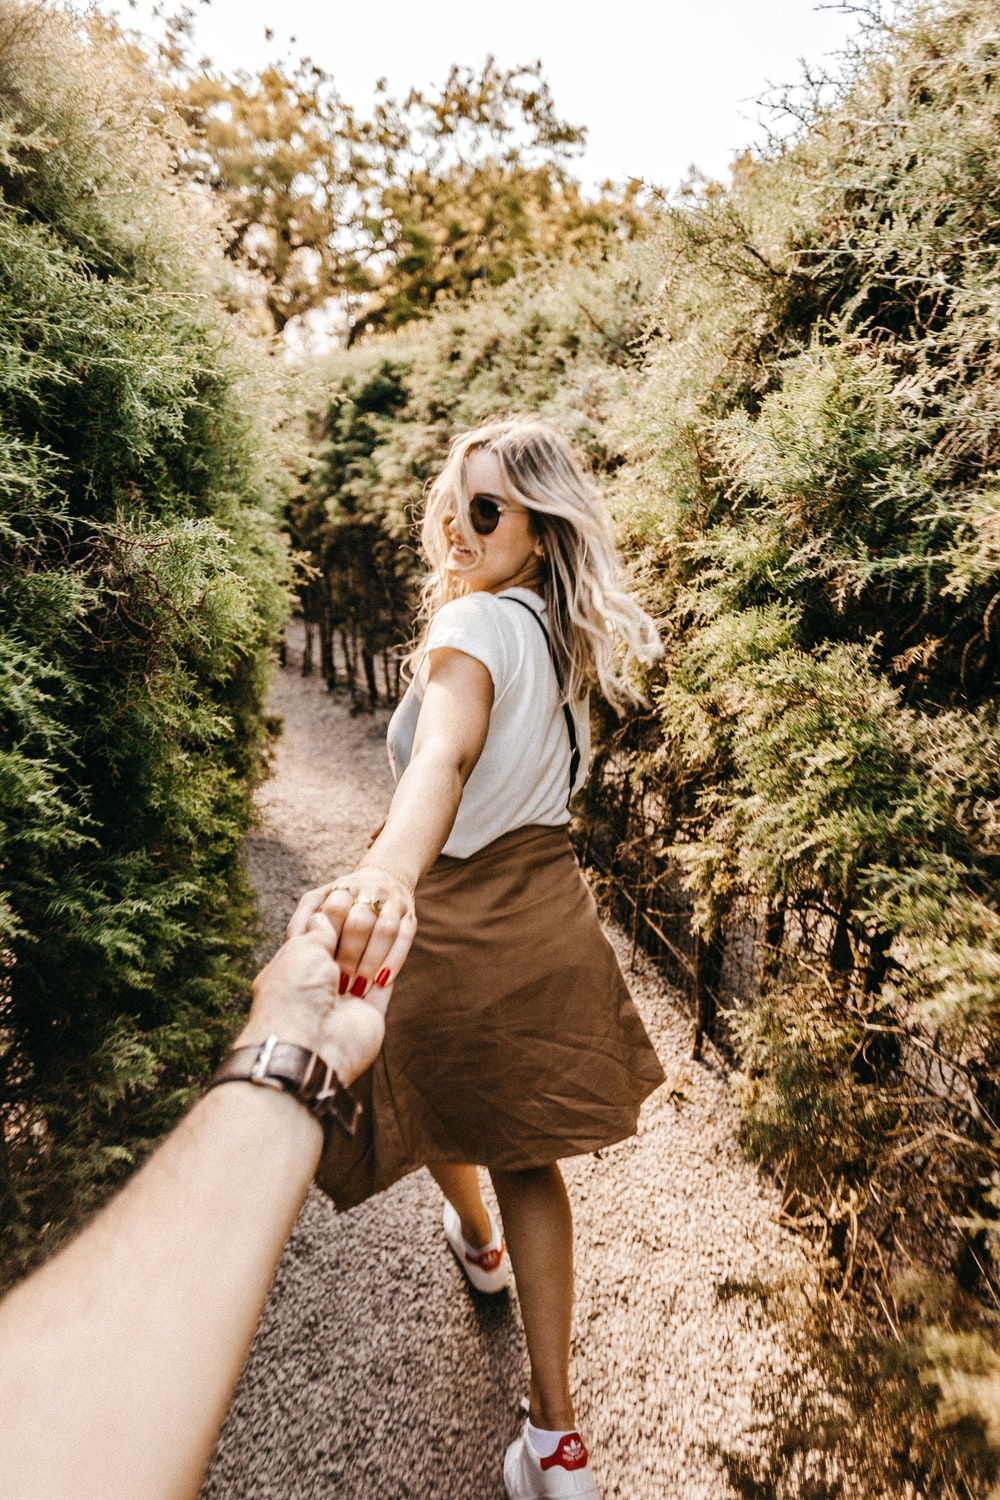 woman holding person's hand near trees